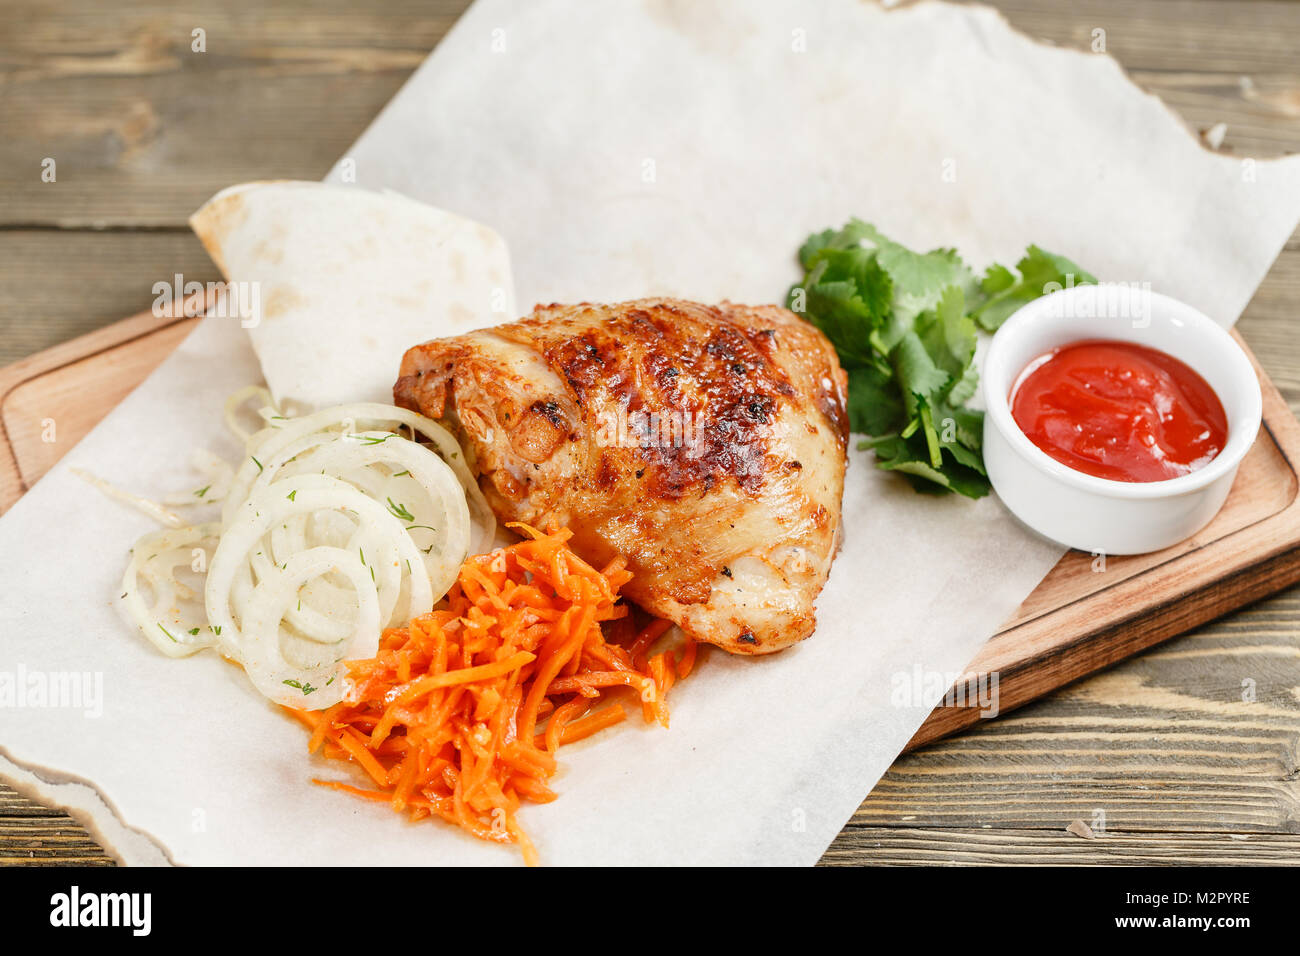 Grilled Chicken Serving On A Wooden Board On A Rustic Table Stock